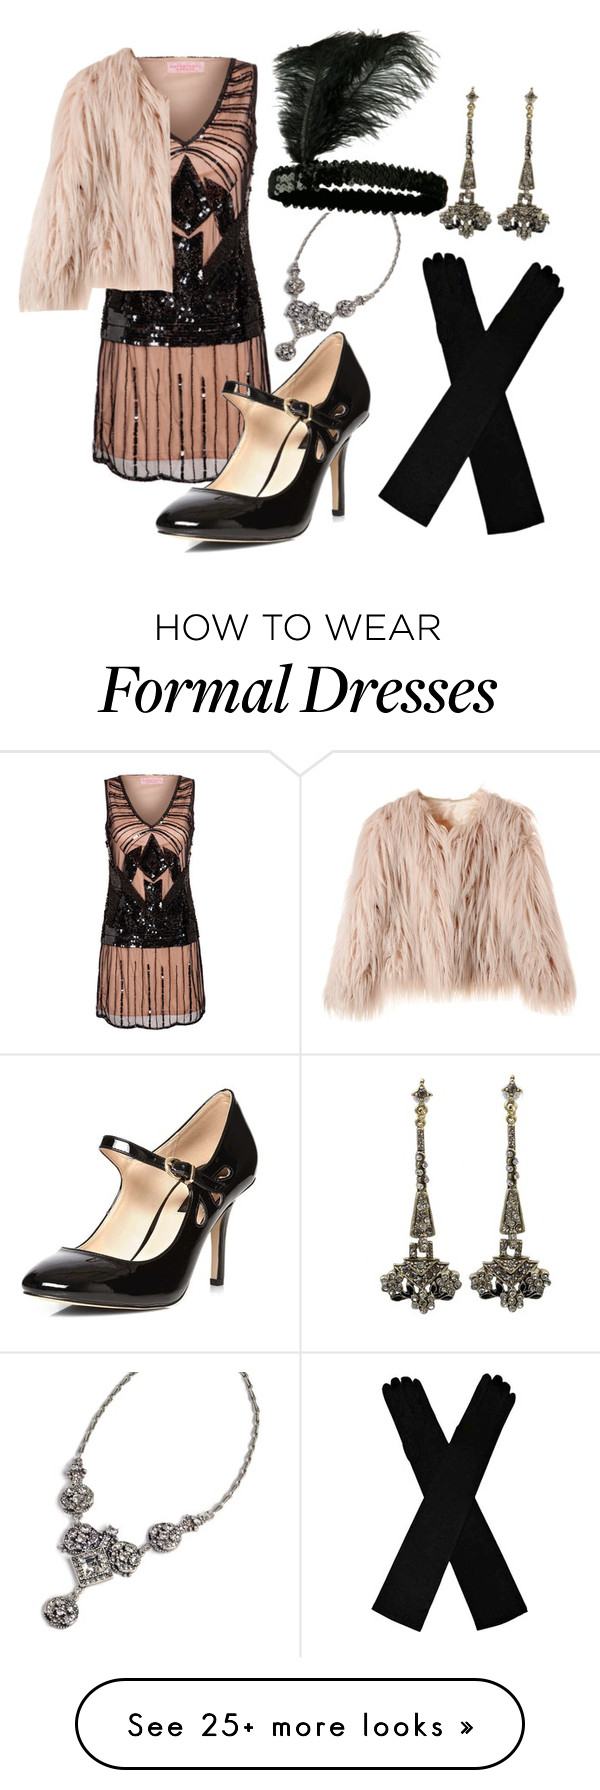 """""""1920s inspired"""" by haleycook56 on Polyvore featuring Dorothy Perkins and Sweet Romance"""